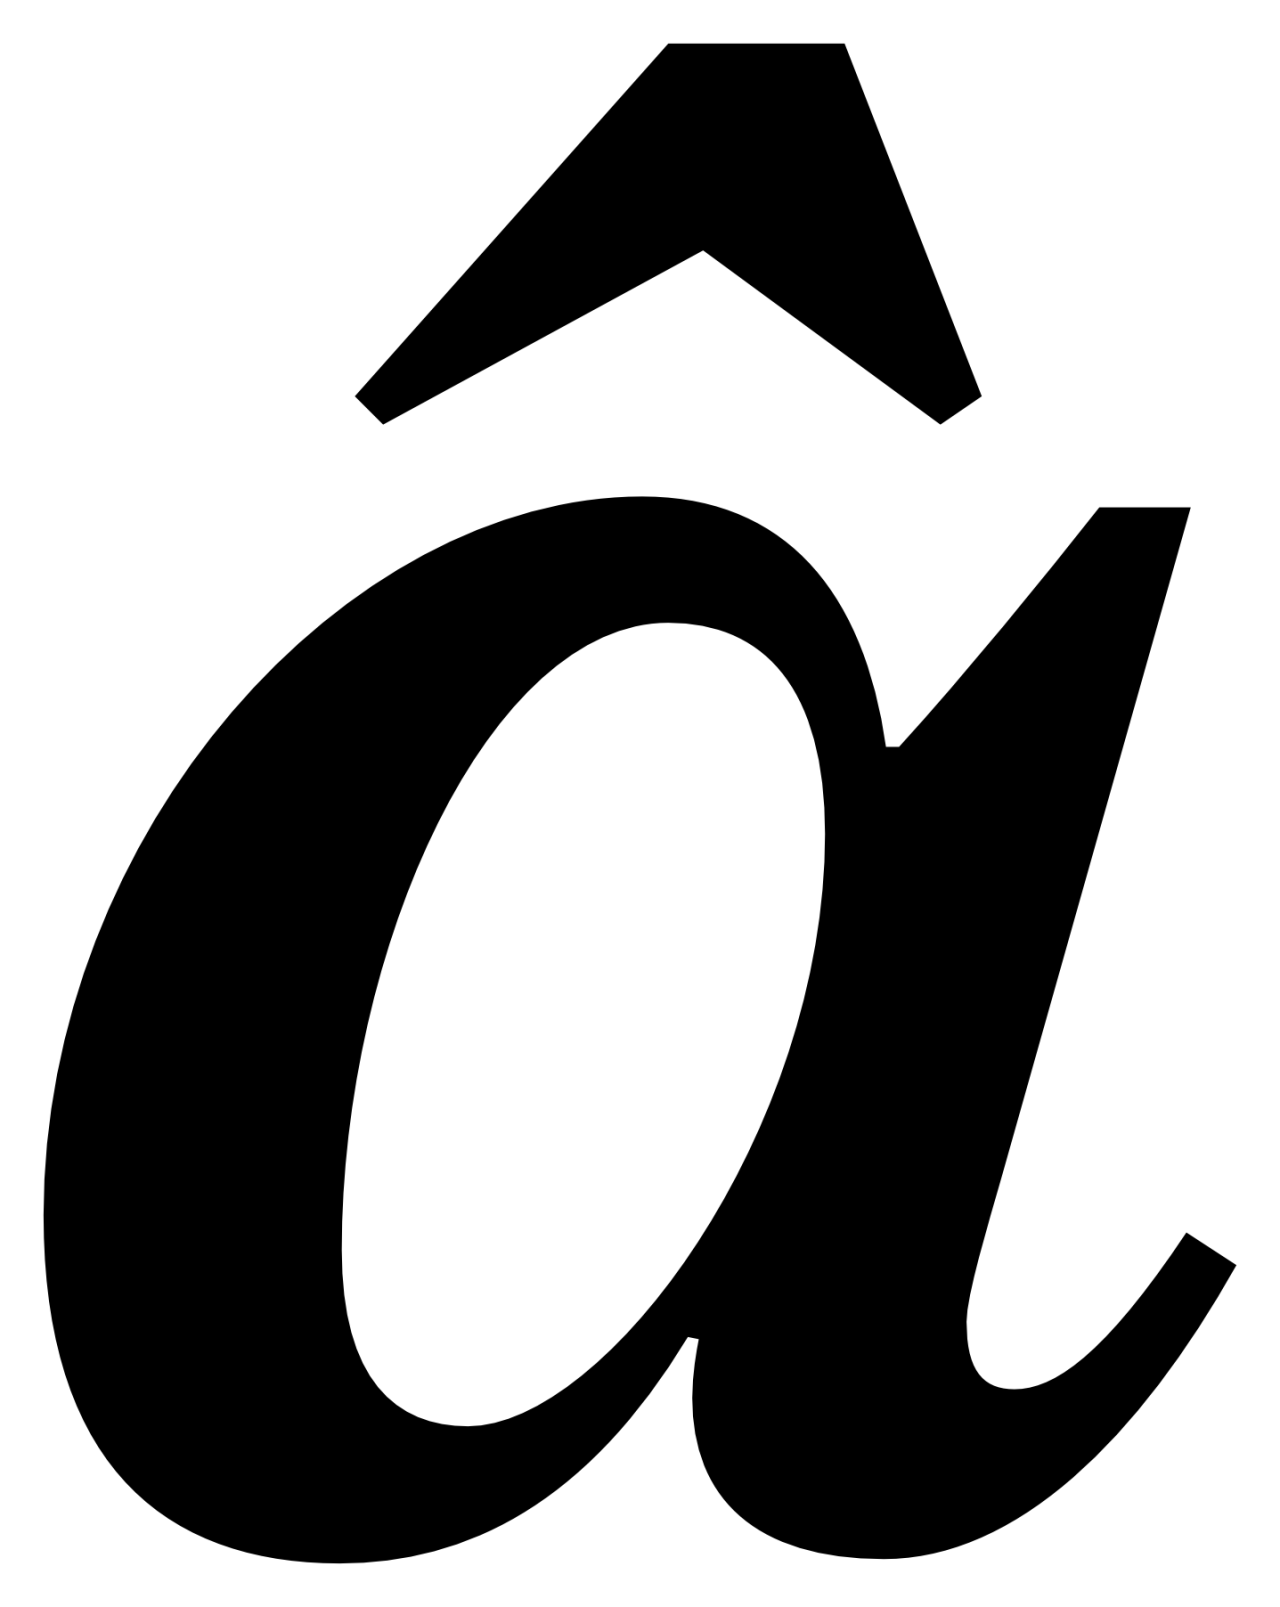 â, Benton Modern - Text Bold Italic Two